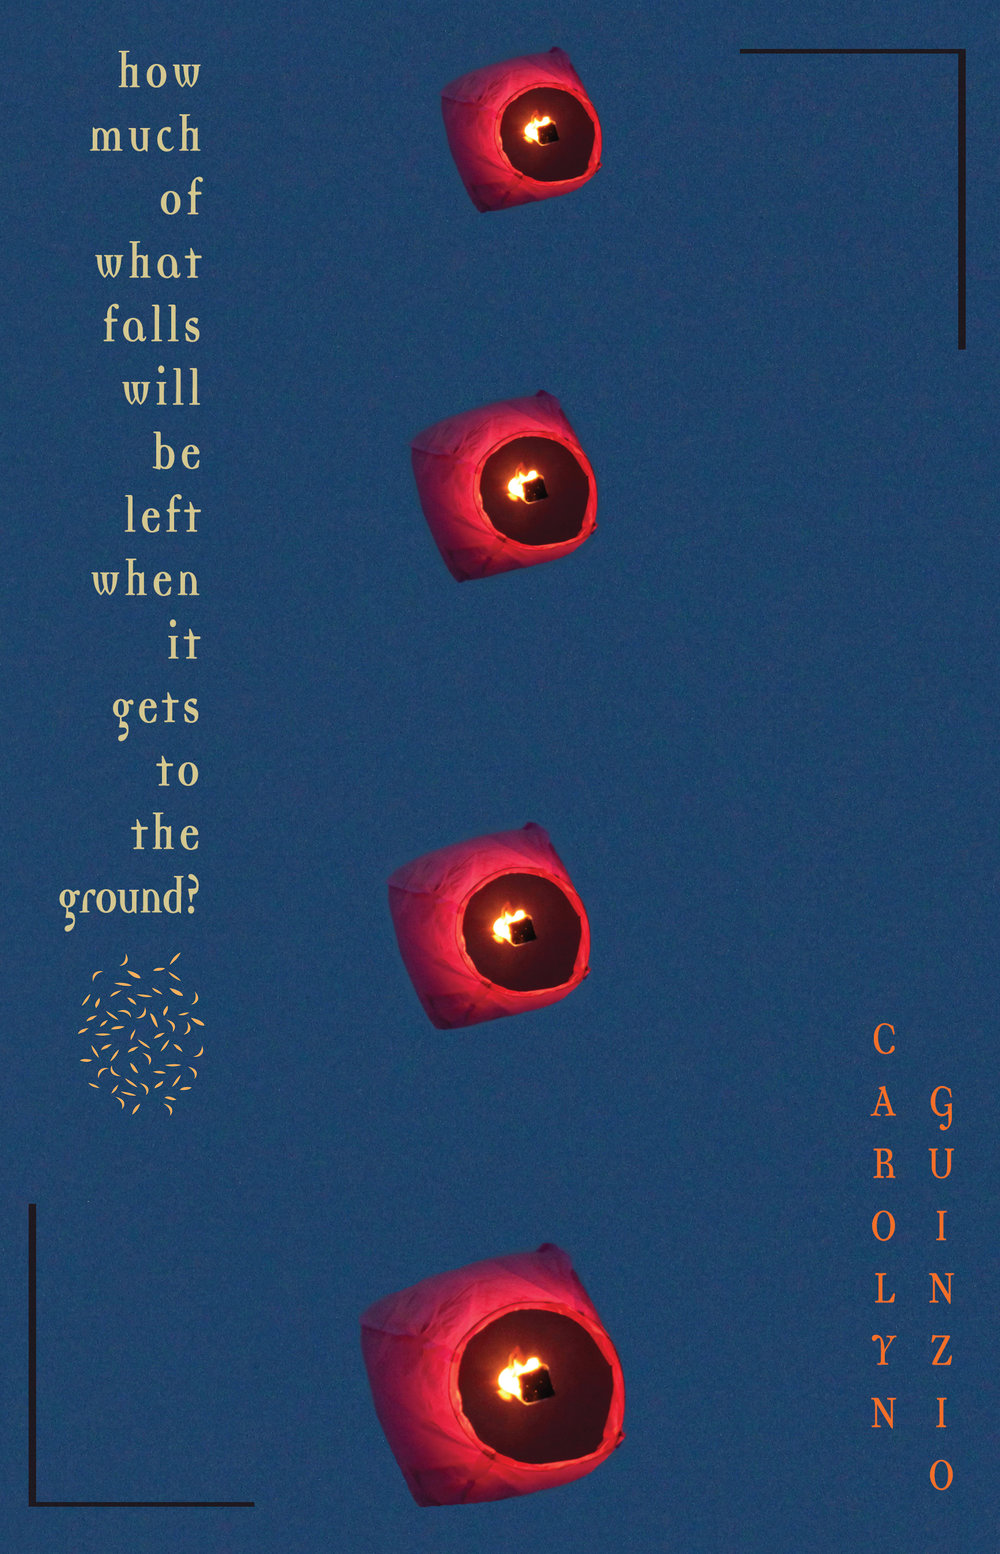 "How Much Of What Falls Will Be Left When It Gets To The Ground?poetry by Carolyn Guinzio - Release Date September 25th, 2018""In this book Carolyn Guinzio creates a world out of elements far beyond language on a page. Maps, photos, collage, typographical art, all intertwine as poetry of breathtaking freshnessnes and depth. This hybrid work is a beautiful exploration of the meaning of place, both present and past. *How Much of What Falls Will Be Left When It Gets To The Ground?* is a wildly layered memory book that demands to be returned to again and again.""Jacob Shores-Arguello, author of Paraíso"